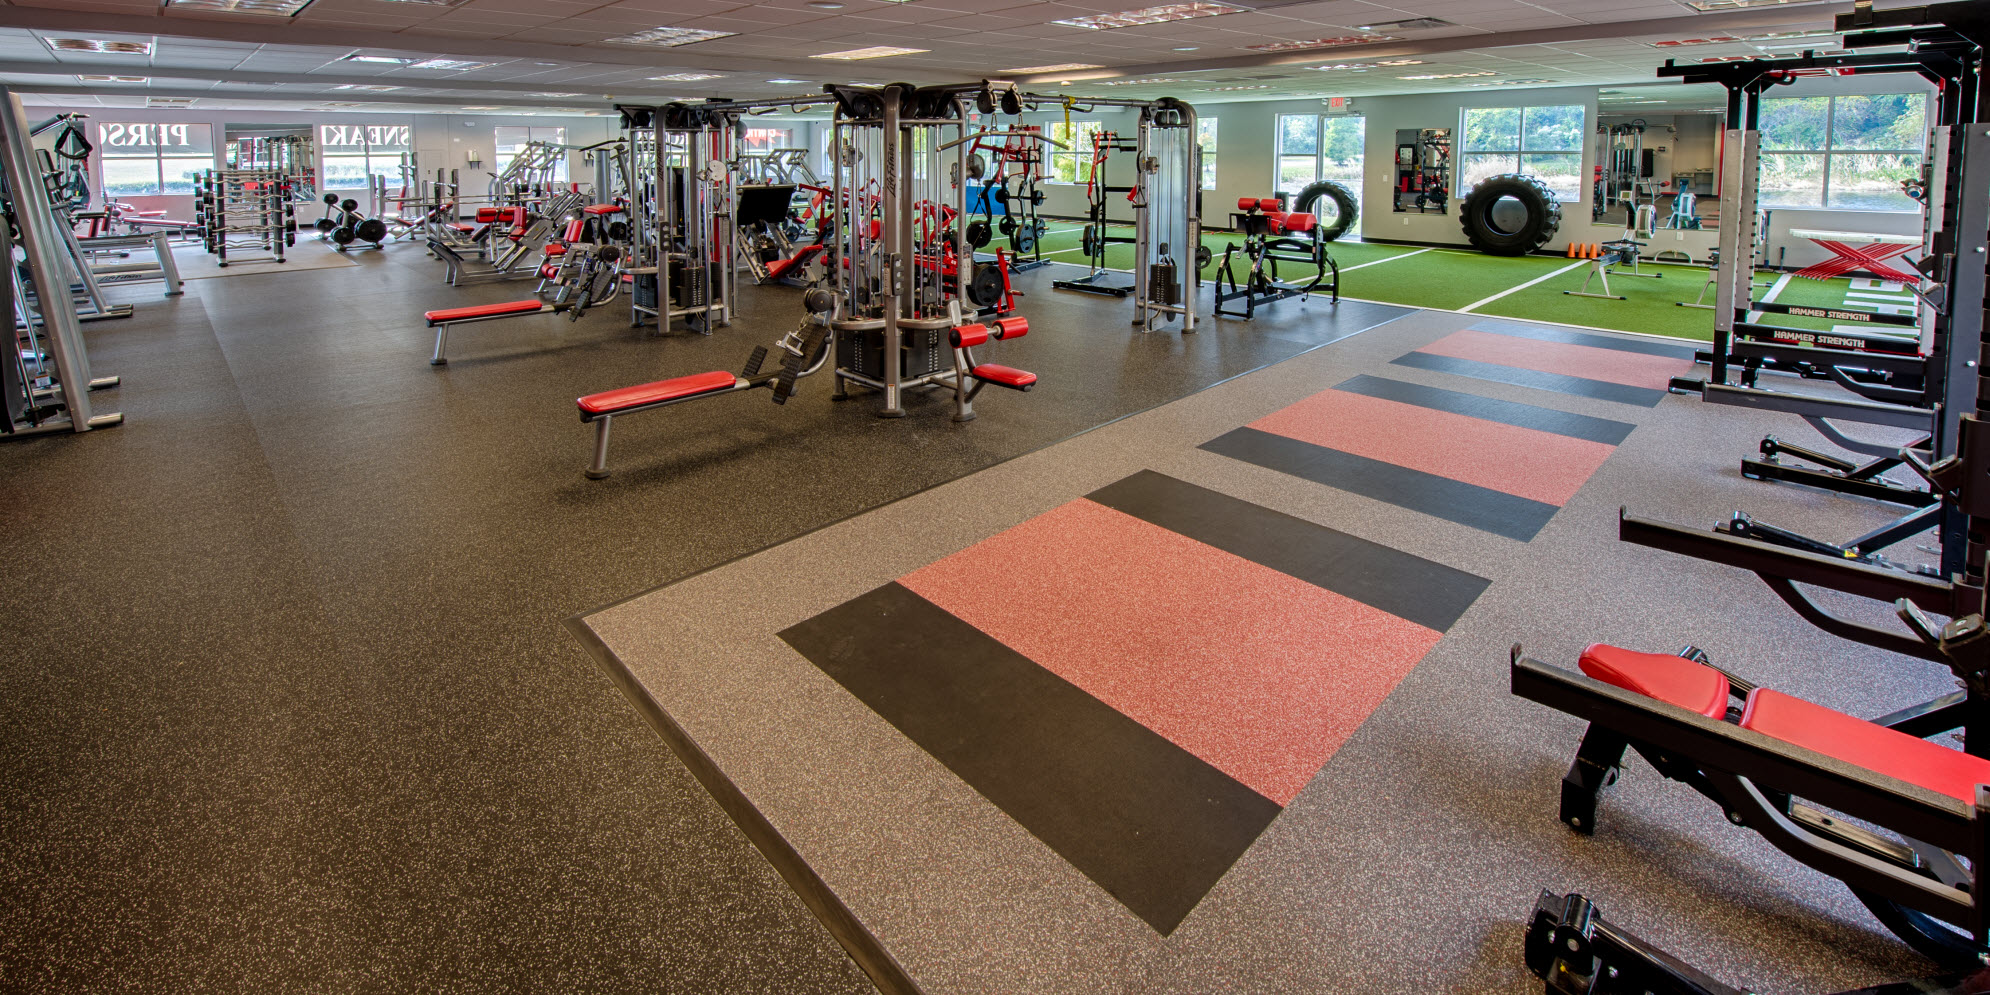 Strive Athletic Club Tampa Gym & Health